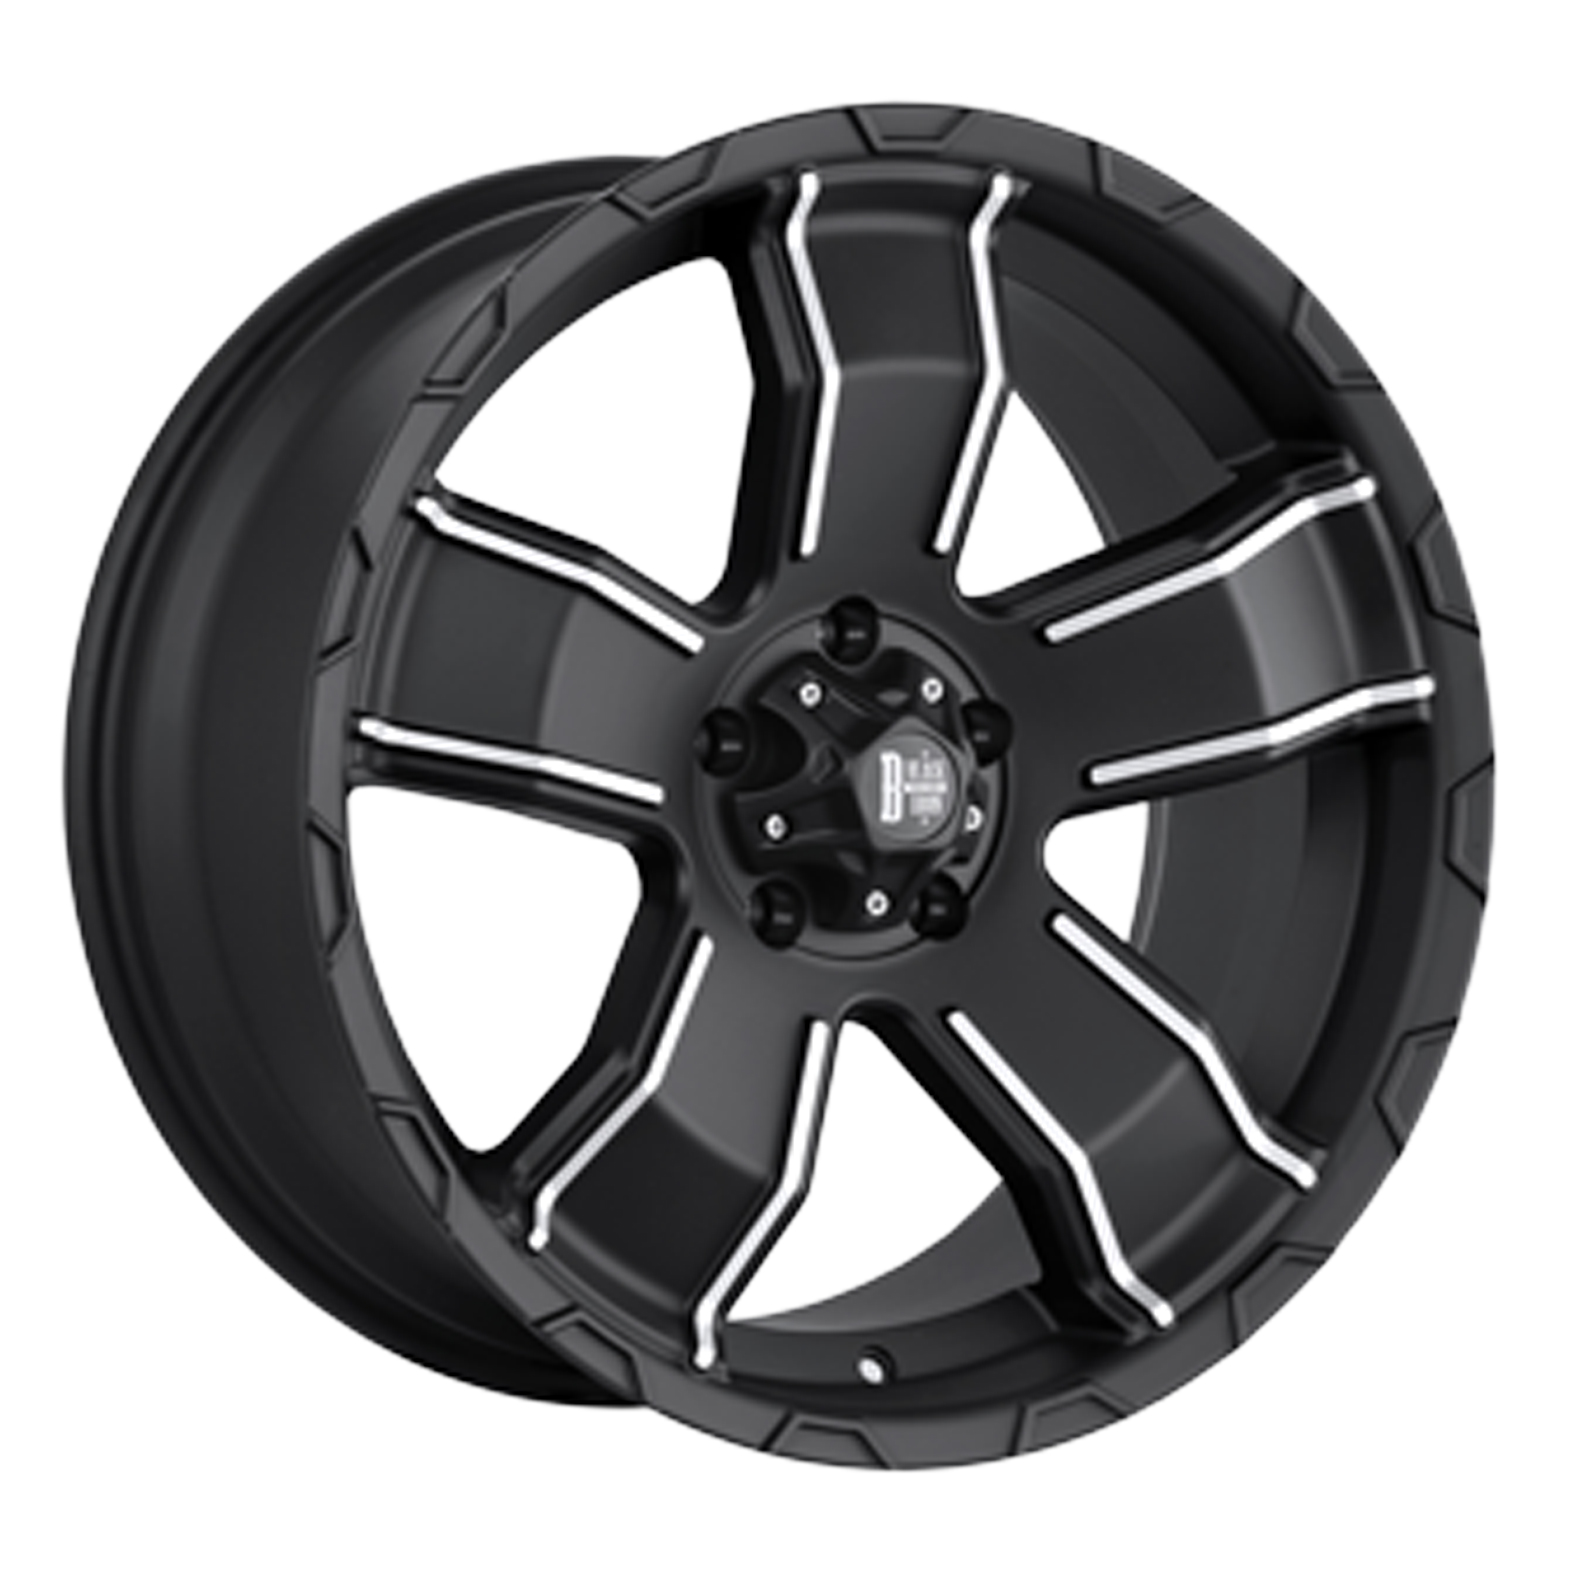 Black Iron Renegade Black Matte Wheel